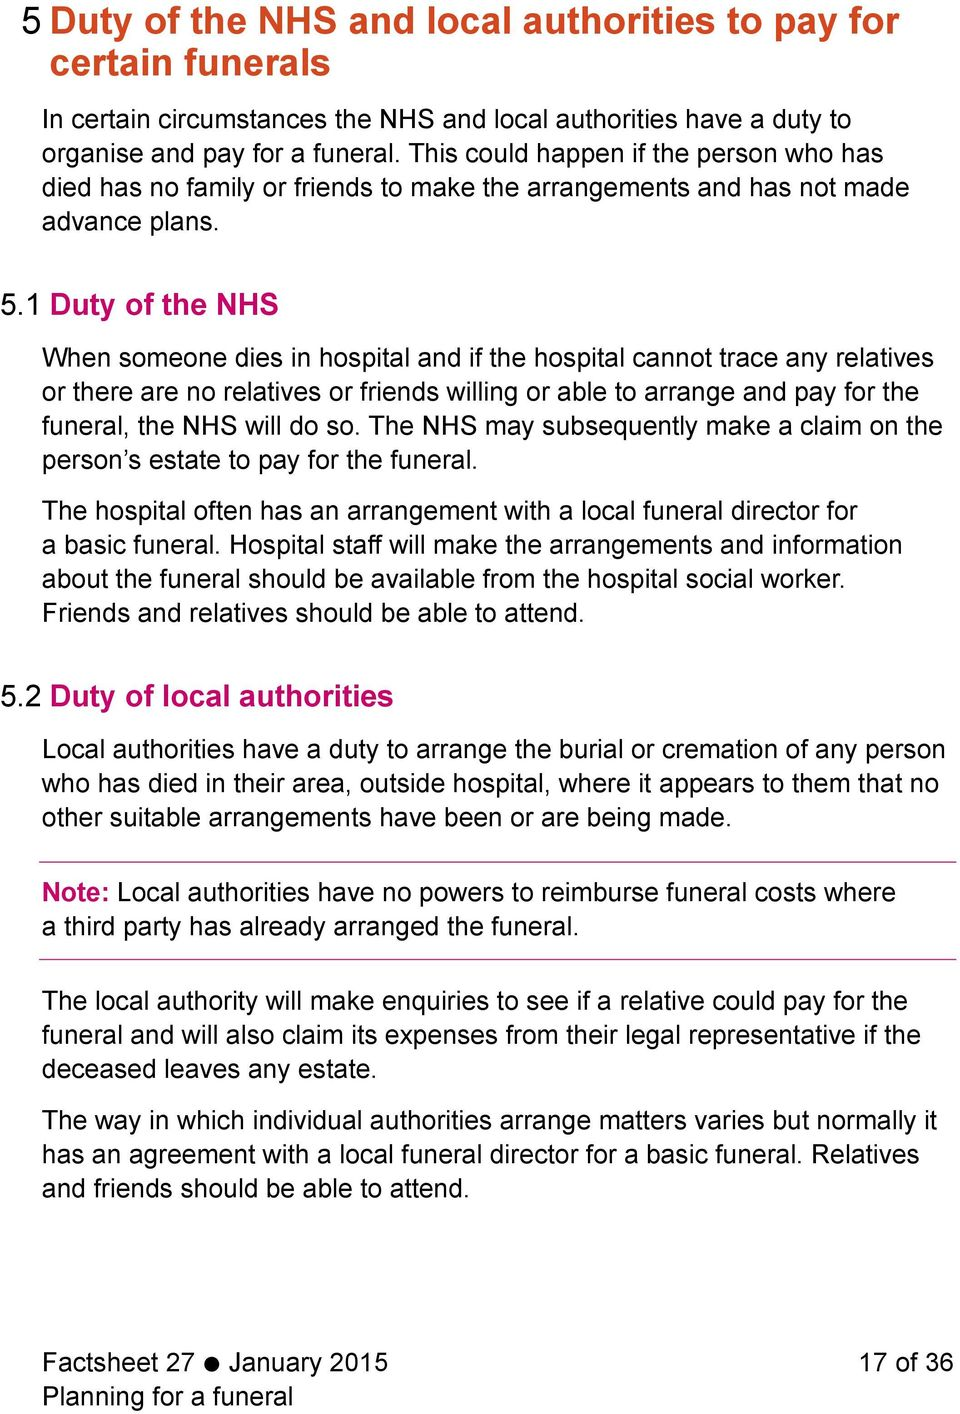 1 Duty of the NHS When someone dies in hospital and if the hospital cannot trace any relatives or there are no relatives or friends willing or able to arrange and pay for the funeral, the NHS will do